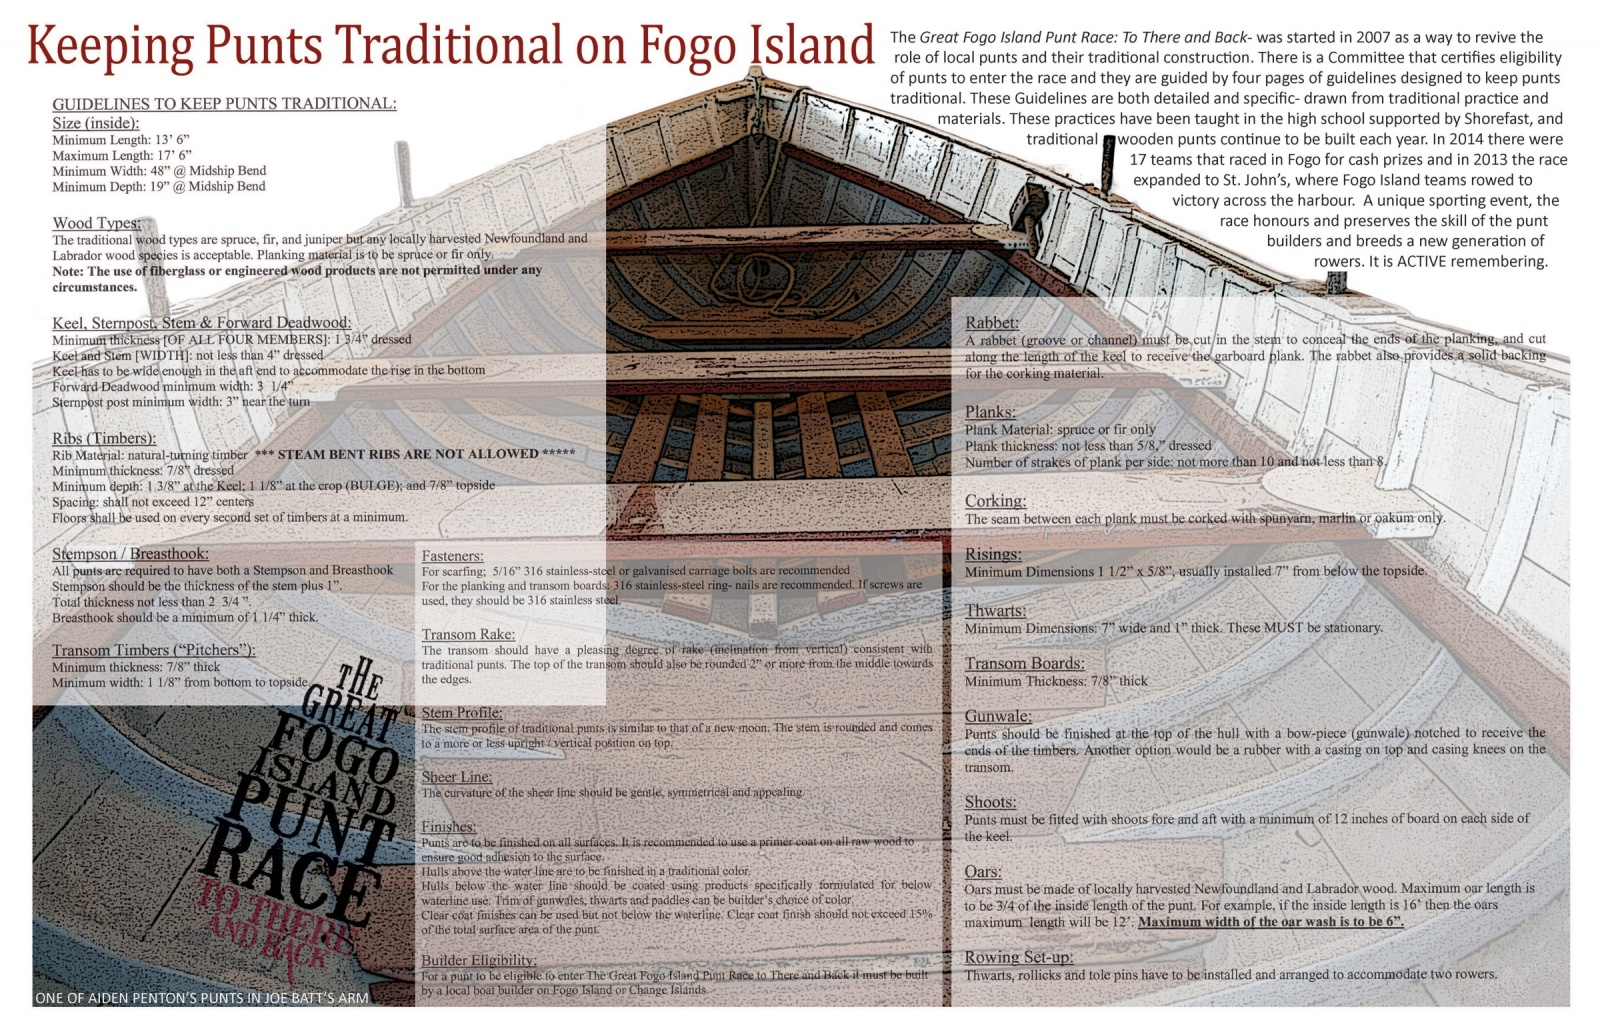 Keeping Punts Traditional on Fogo Island